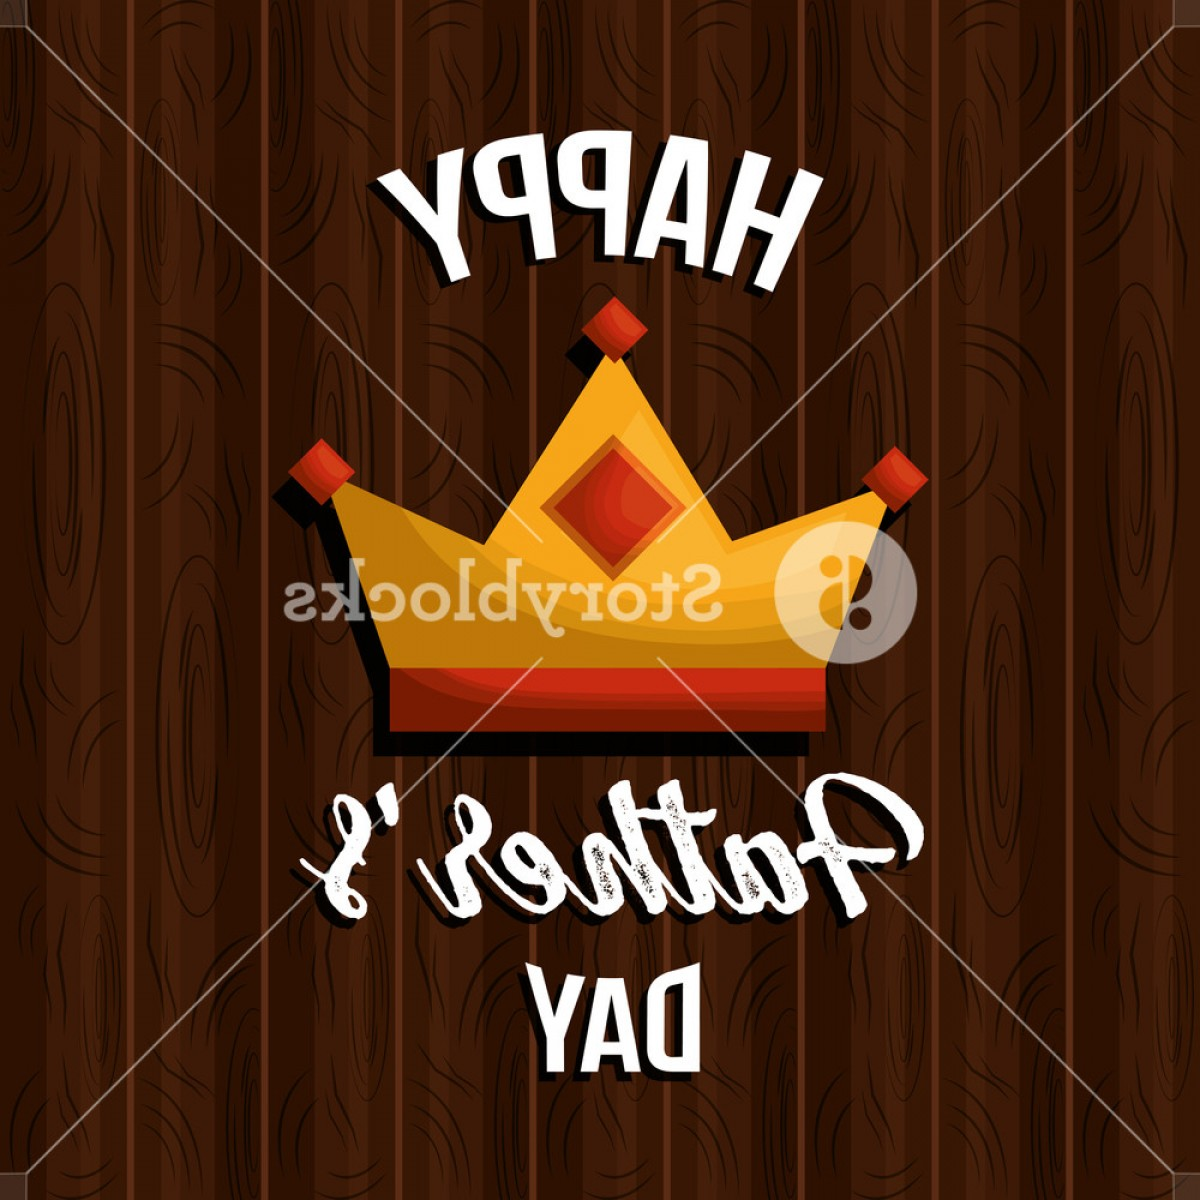 Decorative Font Vector Illustration: Happy Fathers Day Card Crown On Wooden Table Decoration Vector Illustration Bxvgeqffgjeuhkh